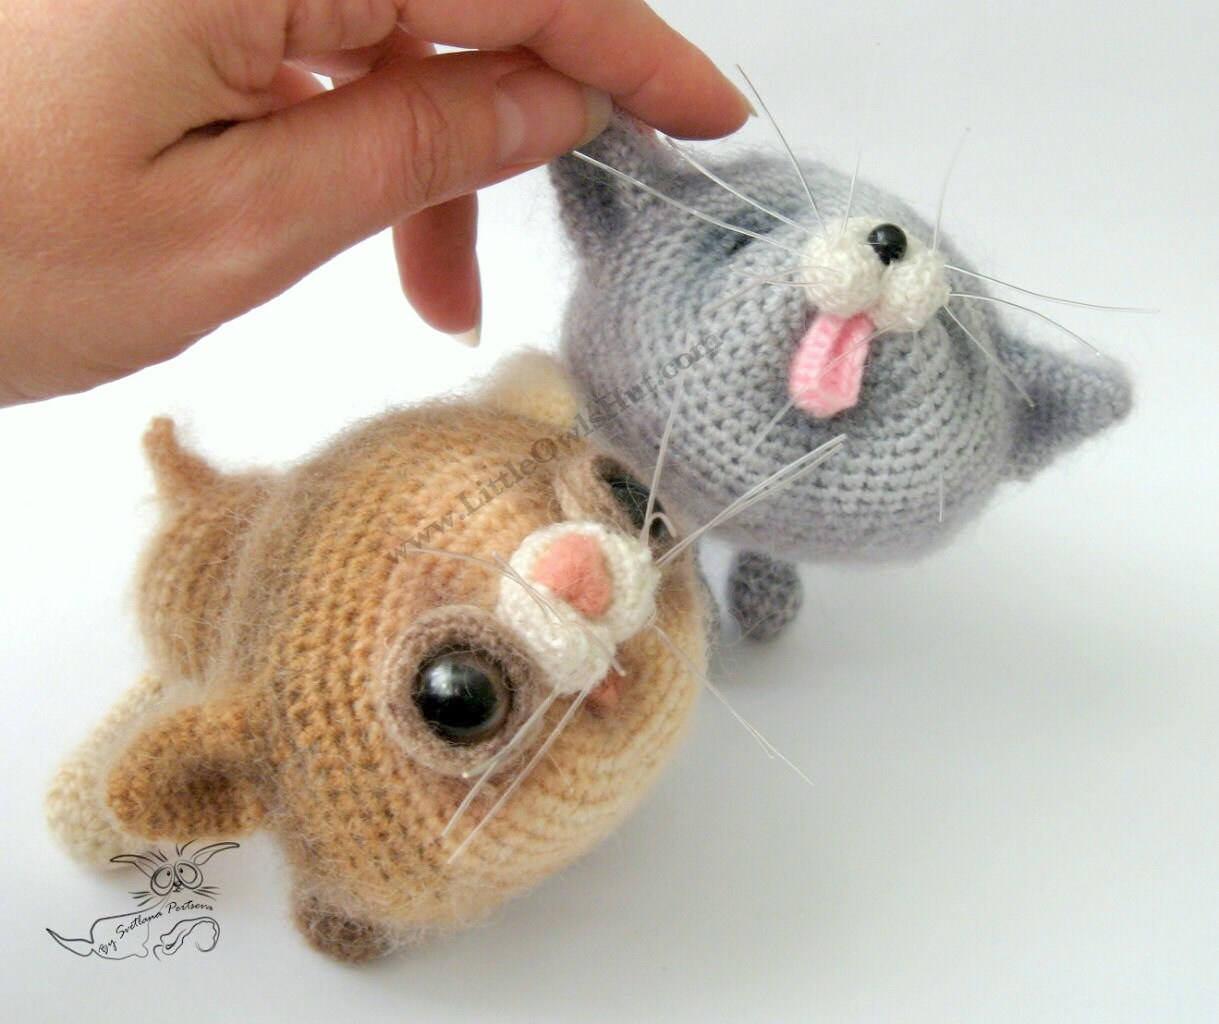 Crochet Patterns Kittens : 020 2 Kittens toy with wire frame Amigurumi Crochet Pattern